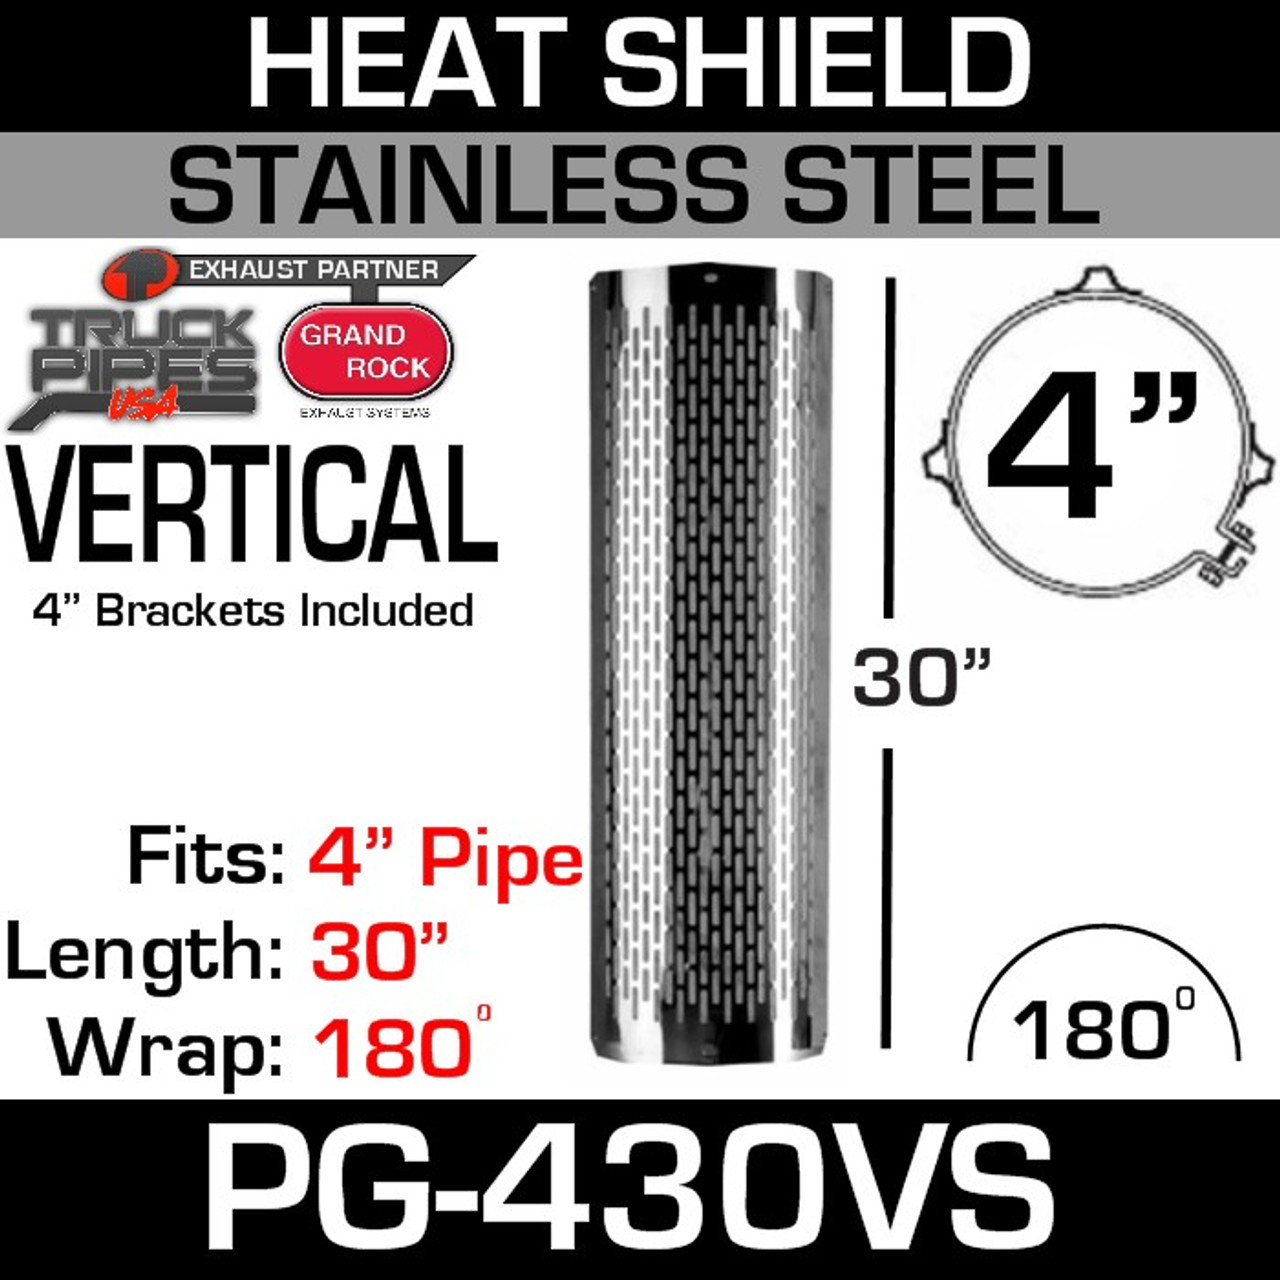 PG-730NS 7 x 30 Stainless Steel No Slot Guard With 7 Brackets